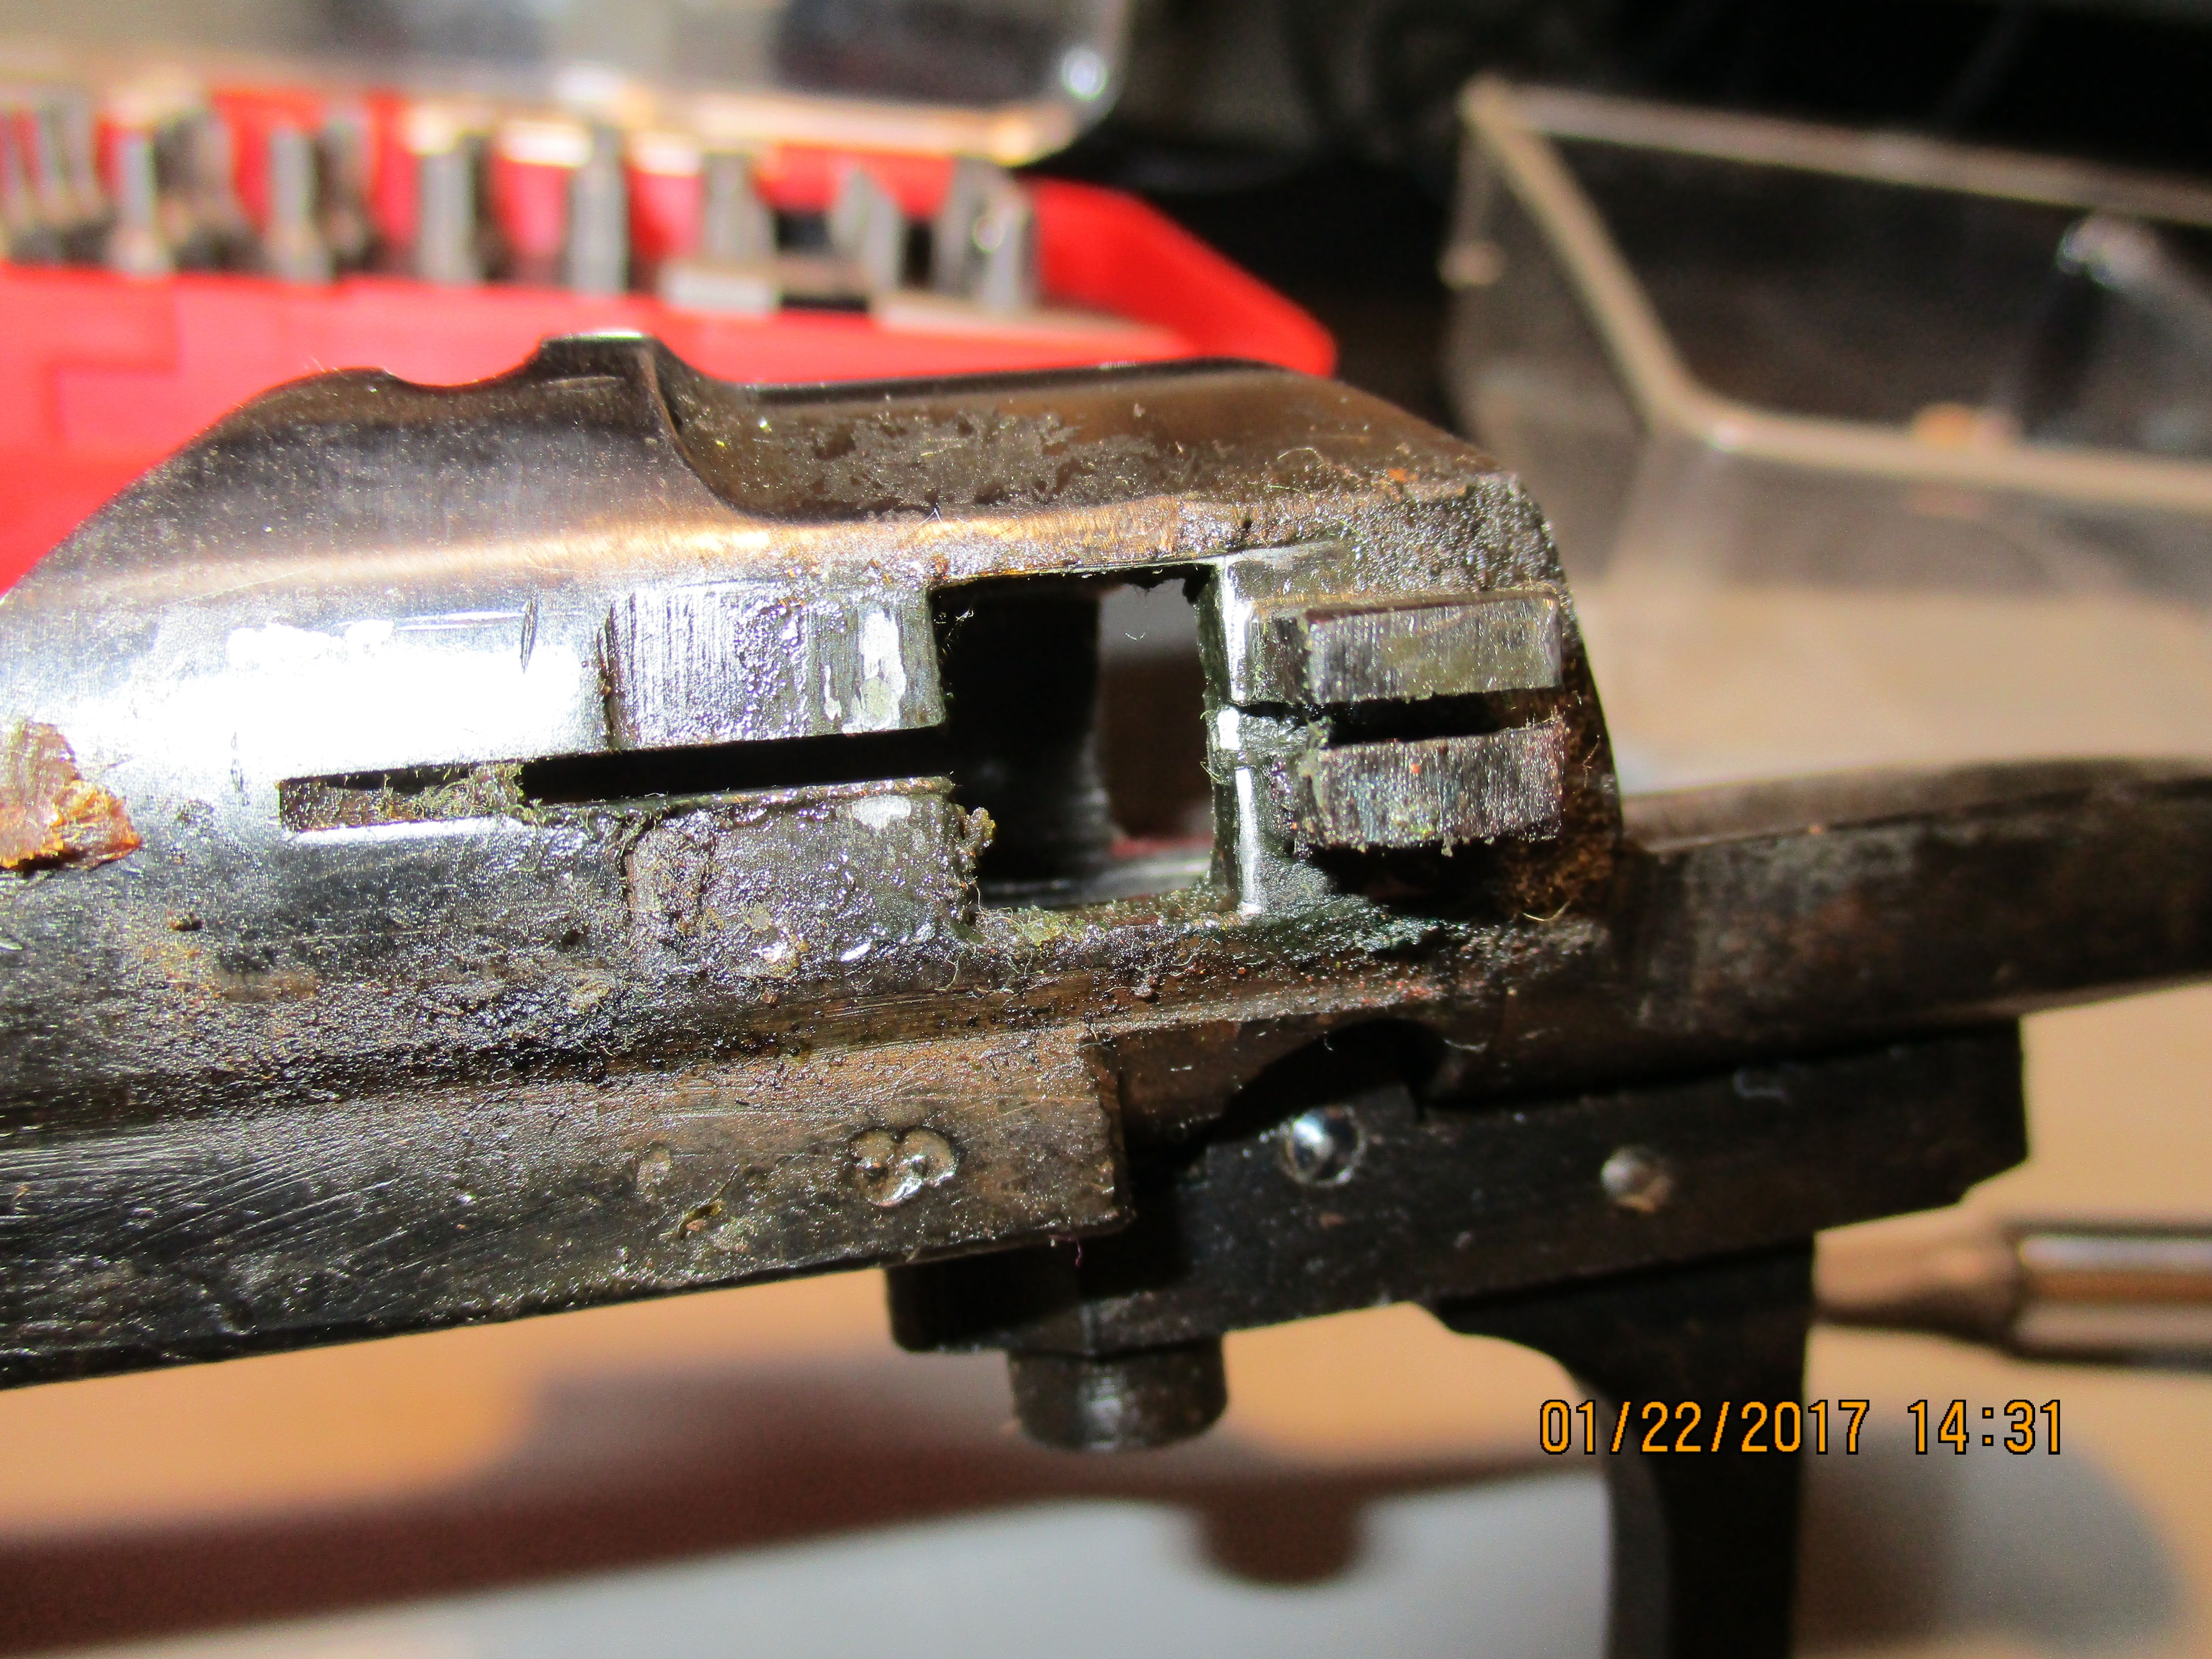 the spanish mauser project underneath the cosmoline and dirt